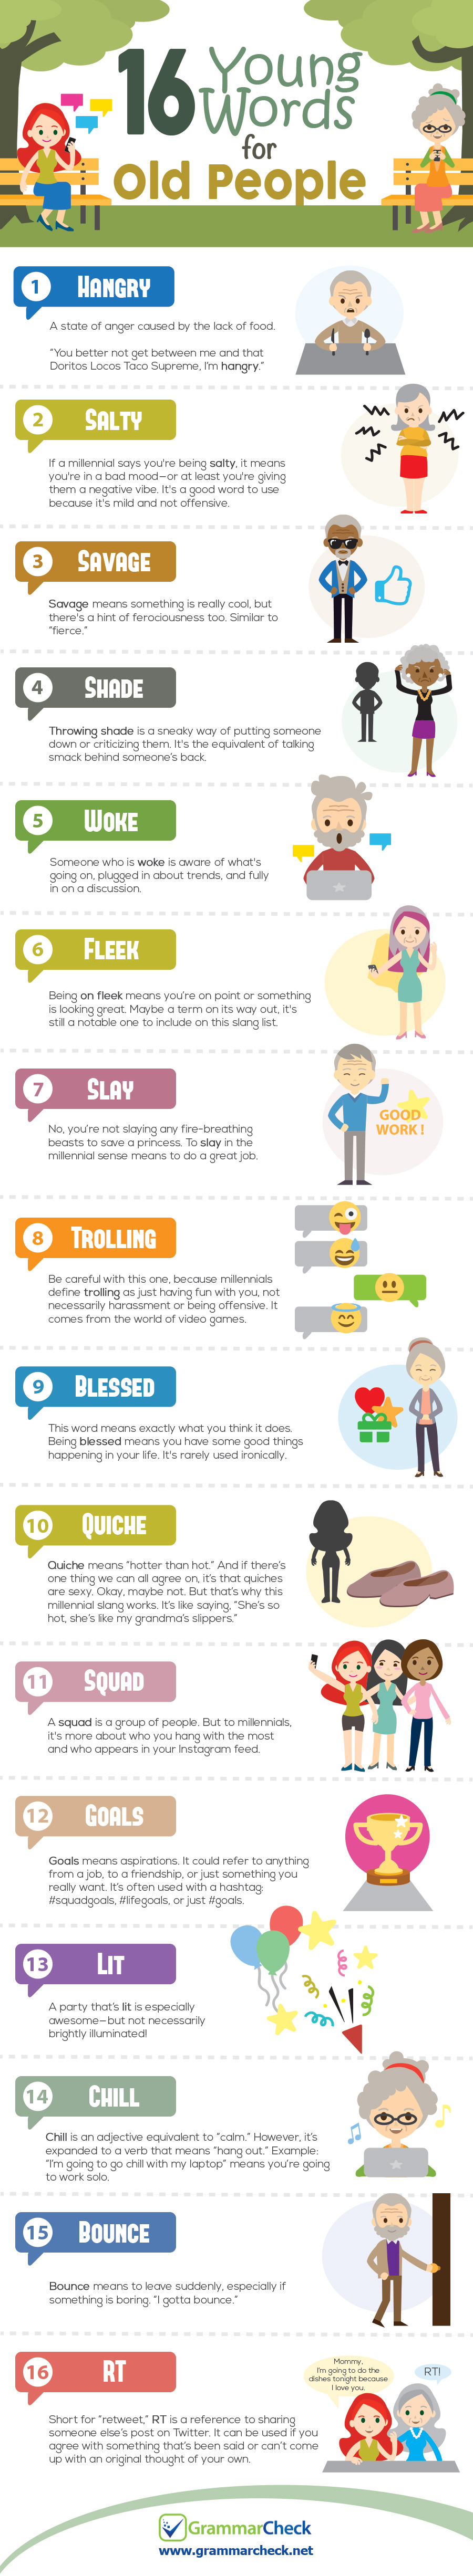 16 Young Words for Old People (Infographic)